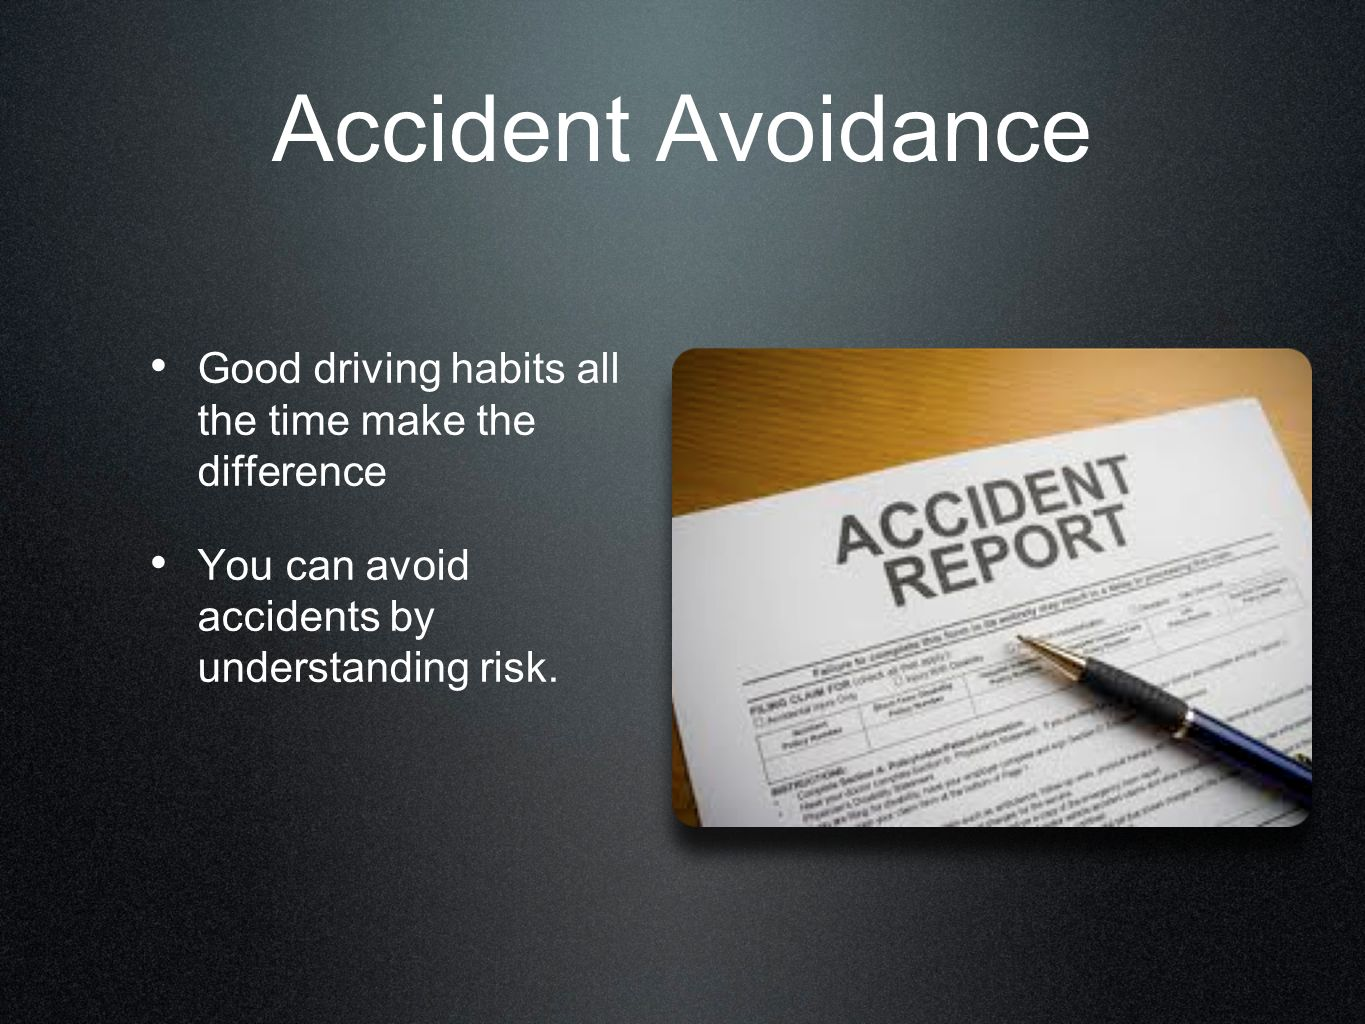 Accident Avoidance Good driving habits all the time make the difference.